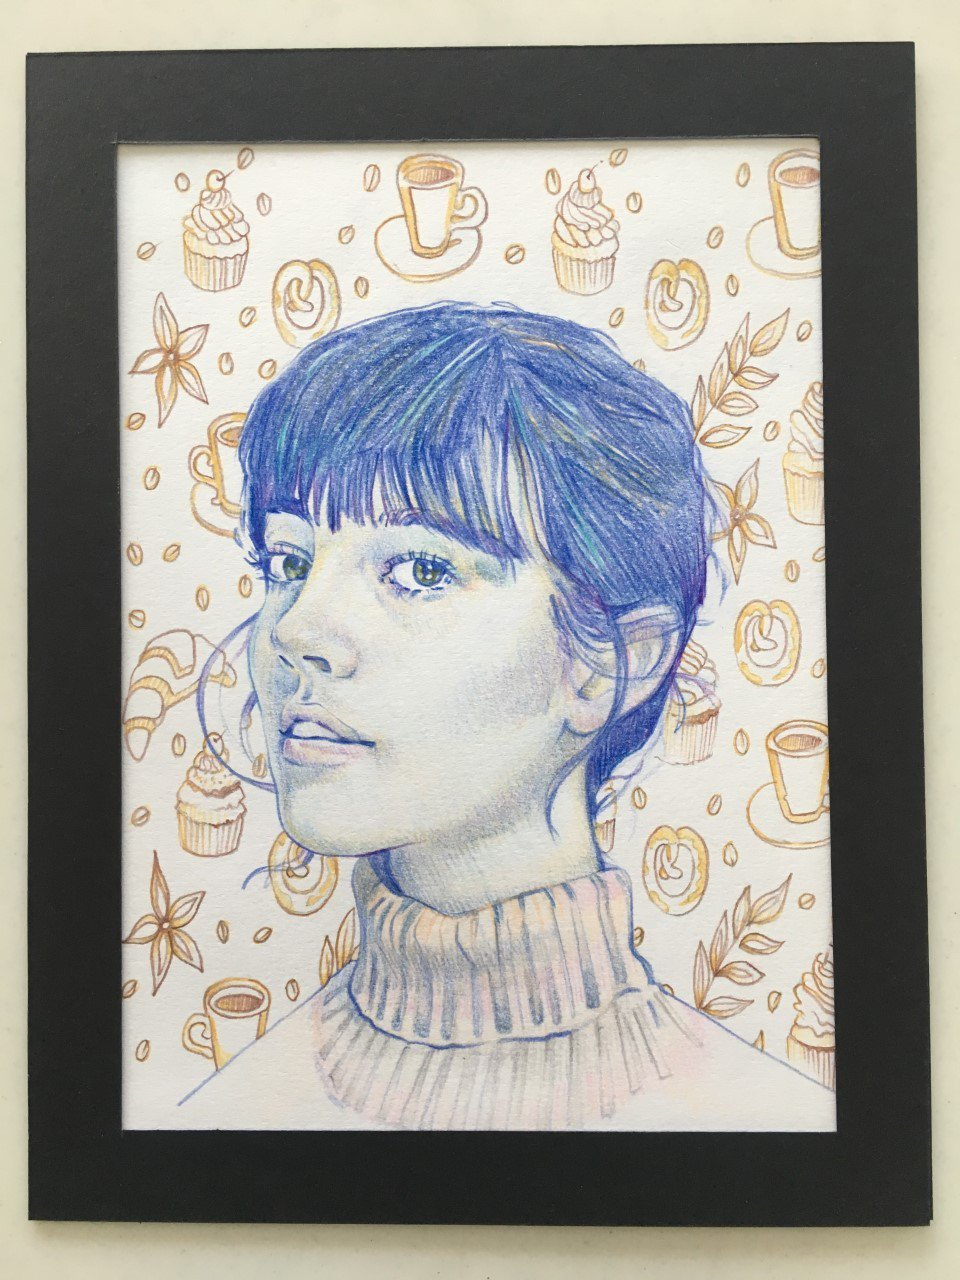 Drawing of a girl with blue hair